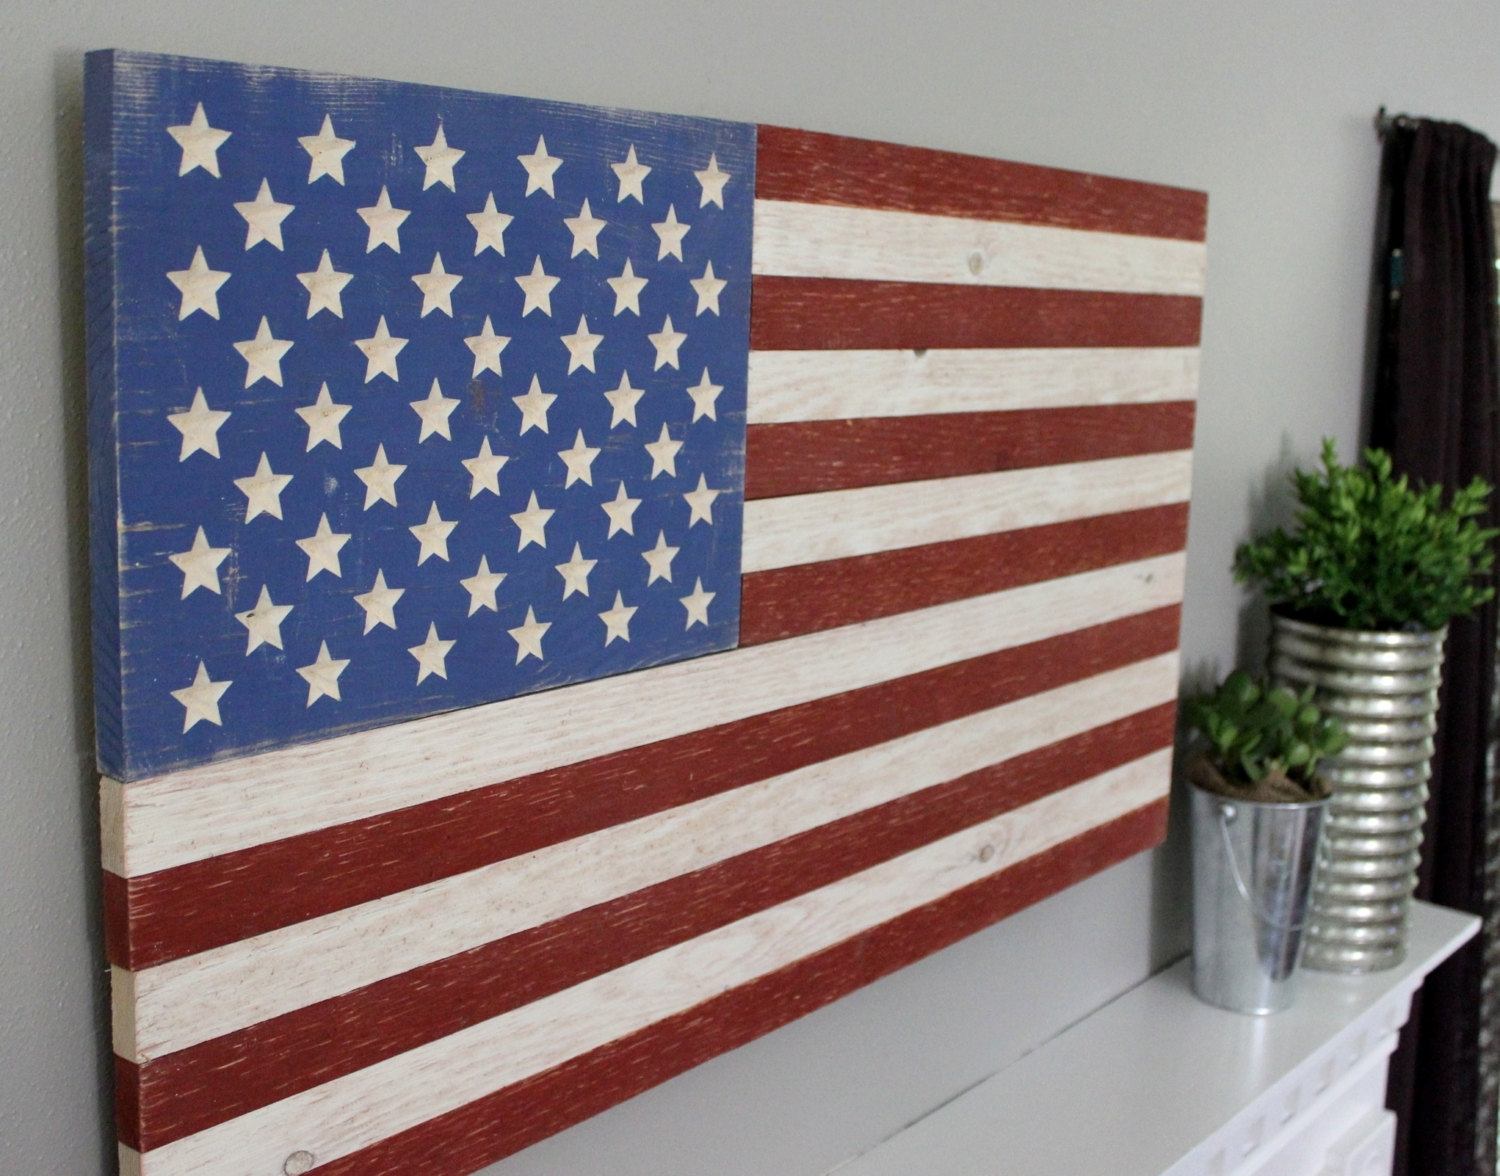 Rustic Wooden American Flag Superb American Flag Wall Art – Prix Throughout Latest Wooden American Flag Wall Art (View 17 of 20)